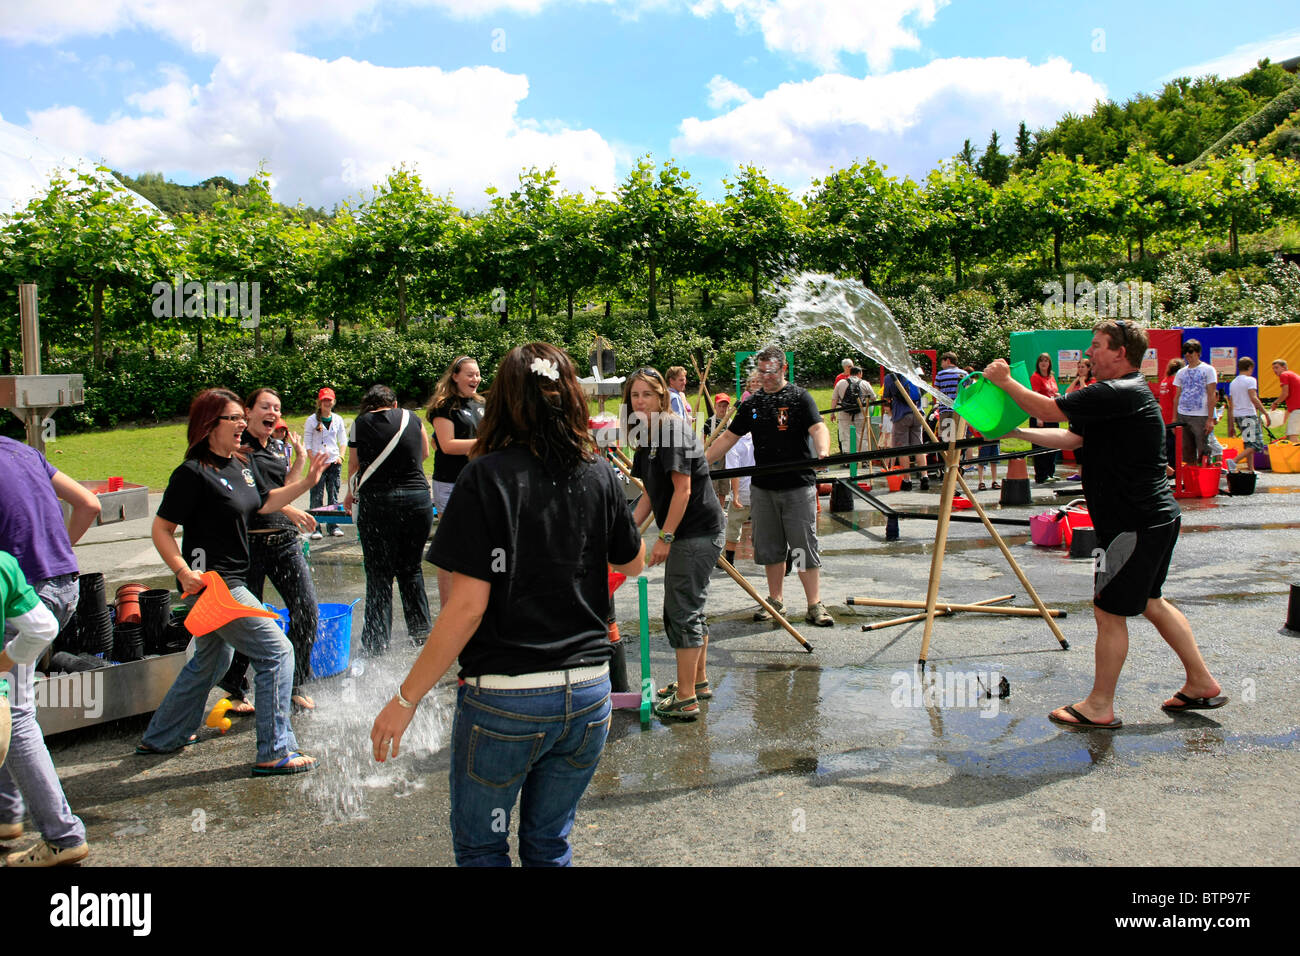 Corporate de-stress day at the Eden Project Cornwall - a money raising concept for the eco-village - Stock Image